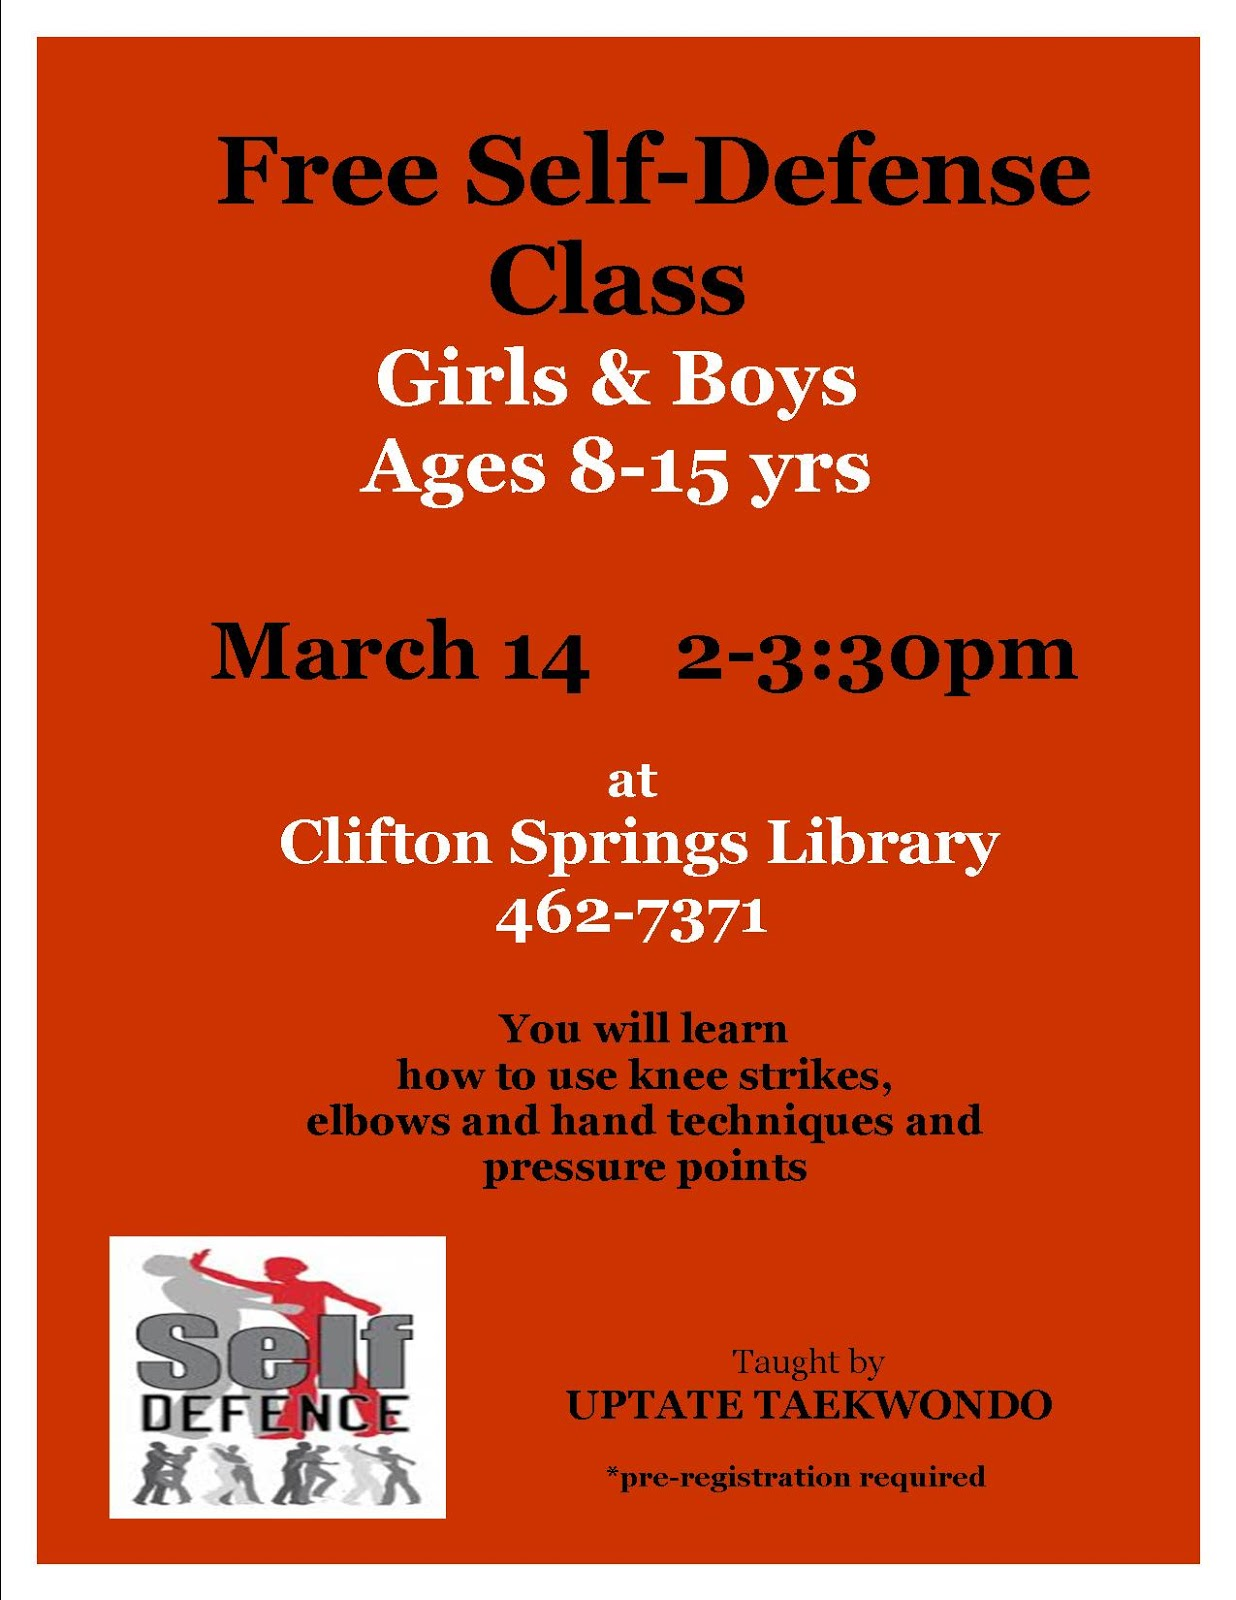 clifton springs women Historical timeline on clifton springs, ny first woman postmaster of the village of clifton springs 1885 - foster school for young women closes 1888.